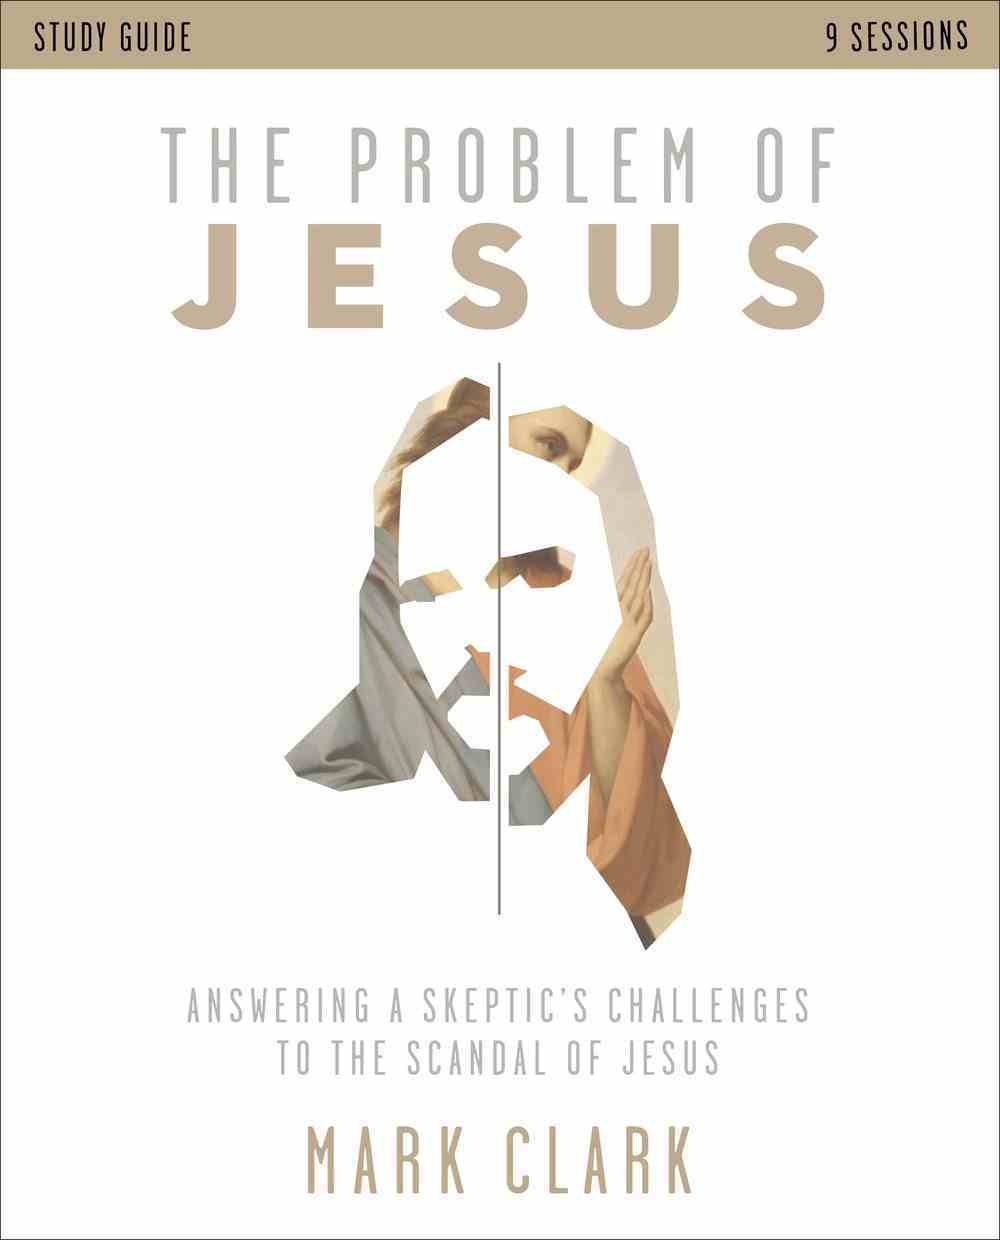 The Problem of Jesus: Answering Skeptics' Challenges to the Scandal of Jesus (Study Guide) Paperback